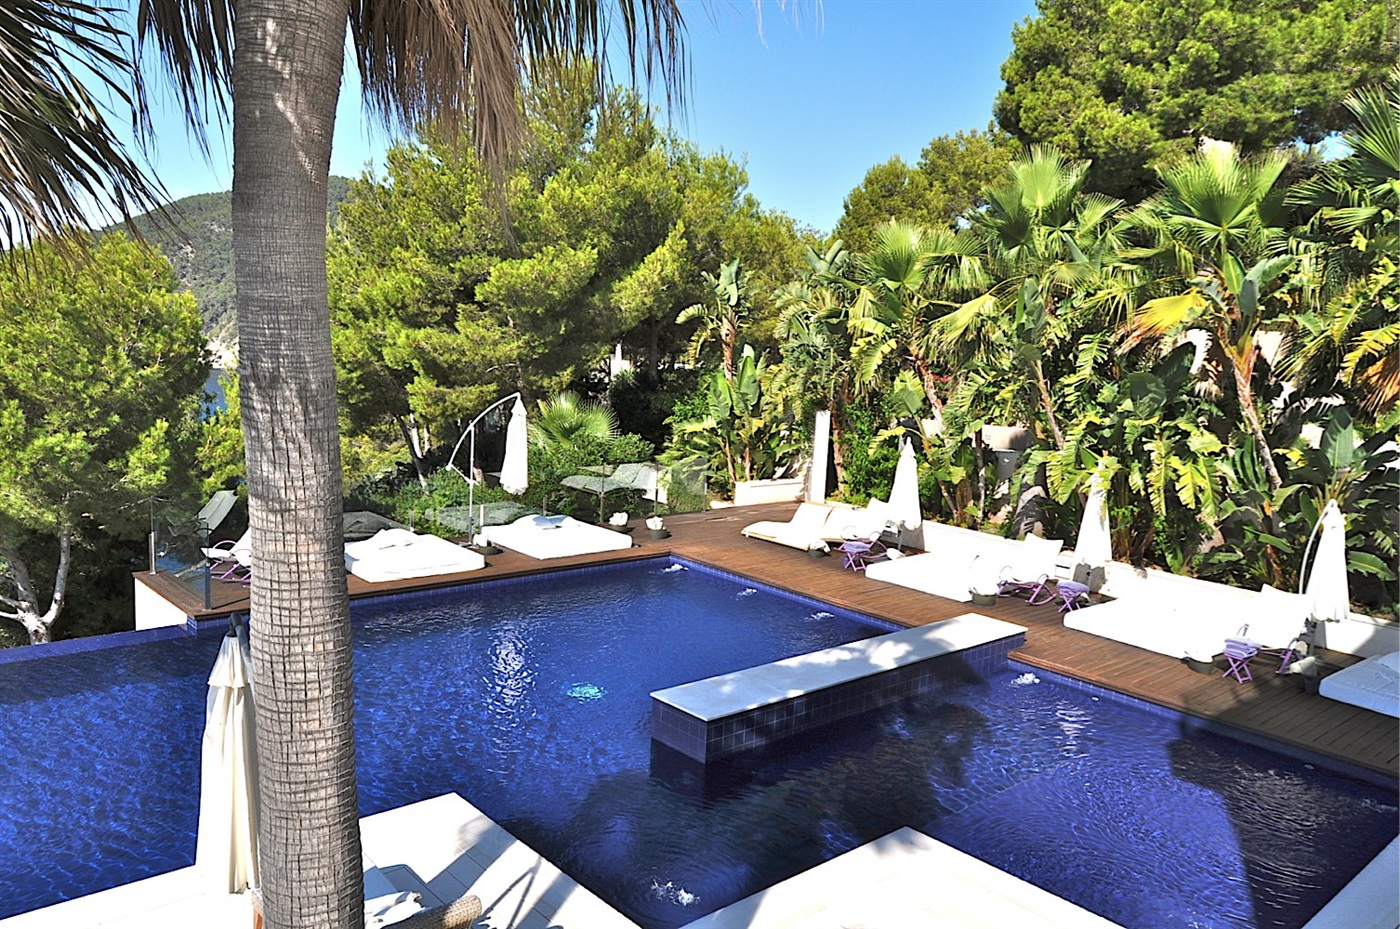 Marvellous frontline villa on the cliffs of Cala San Vincente